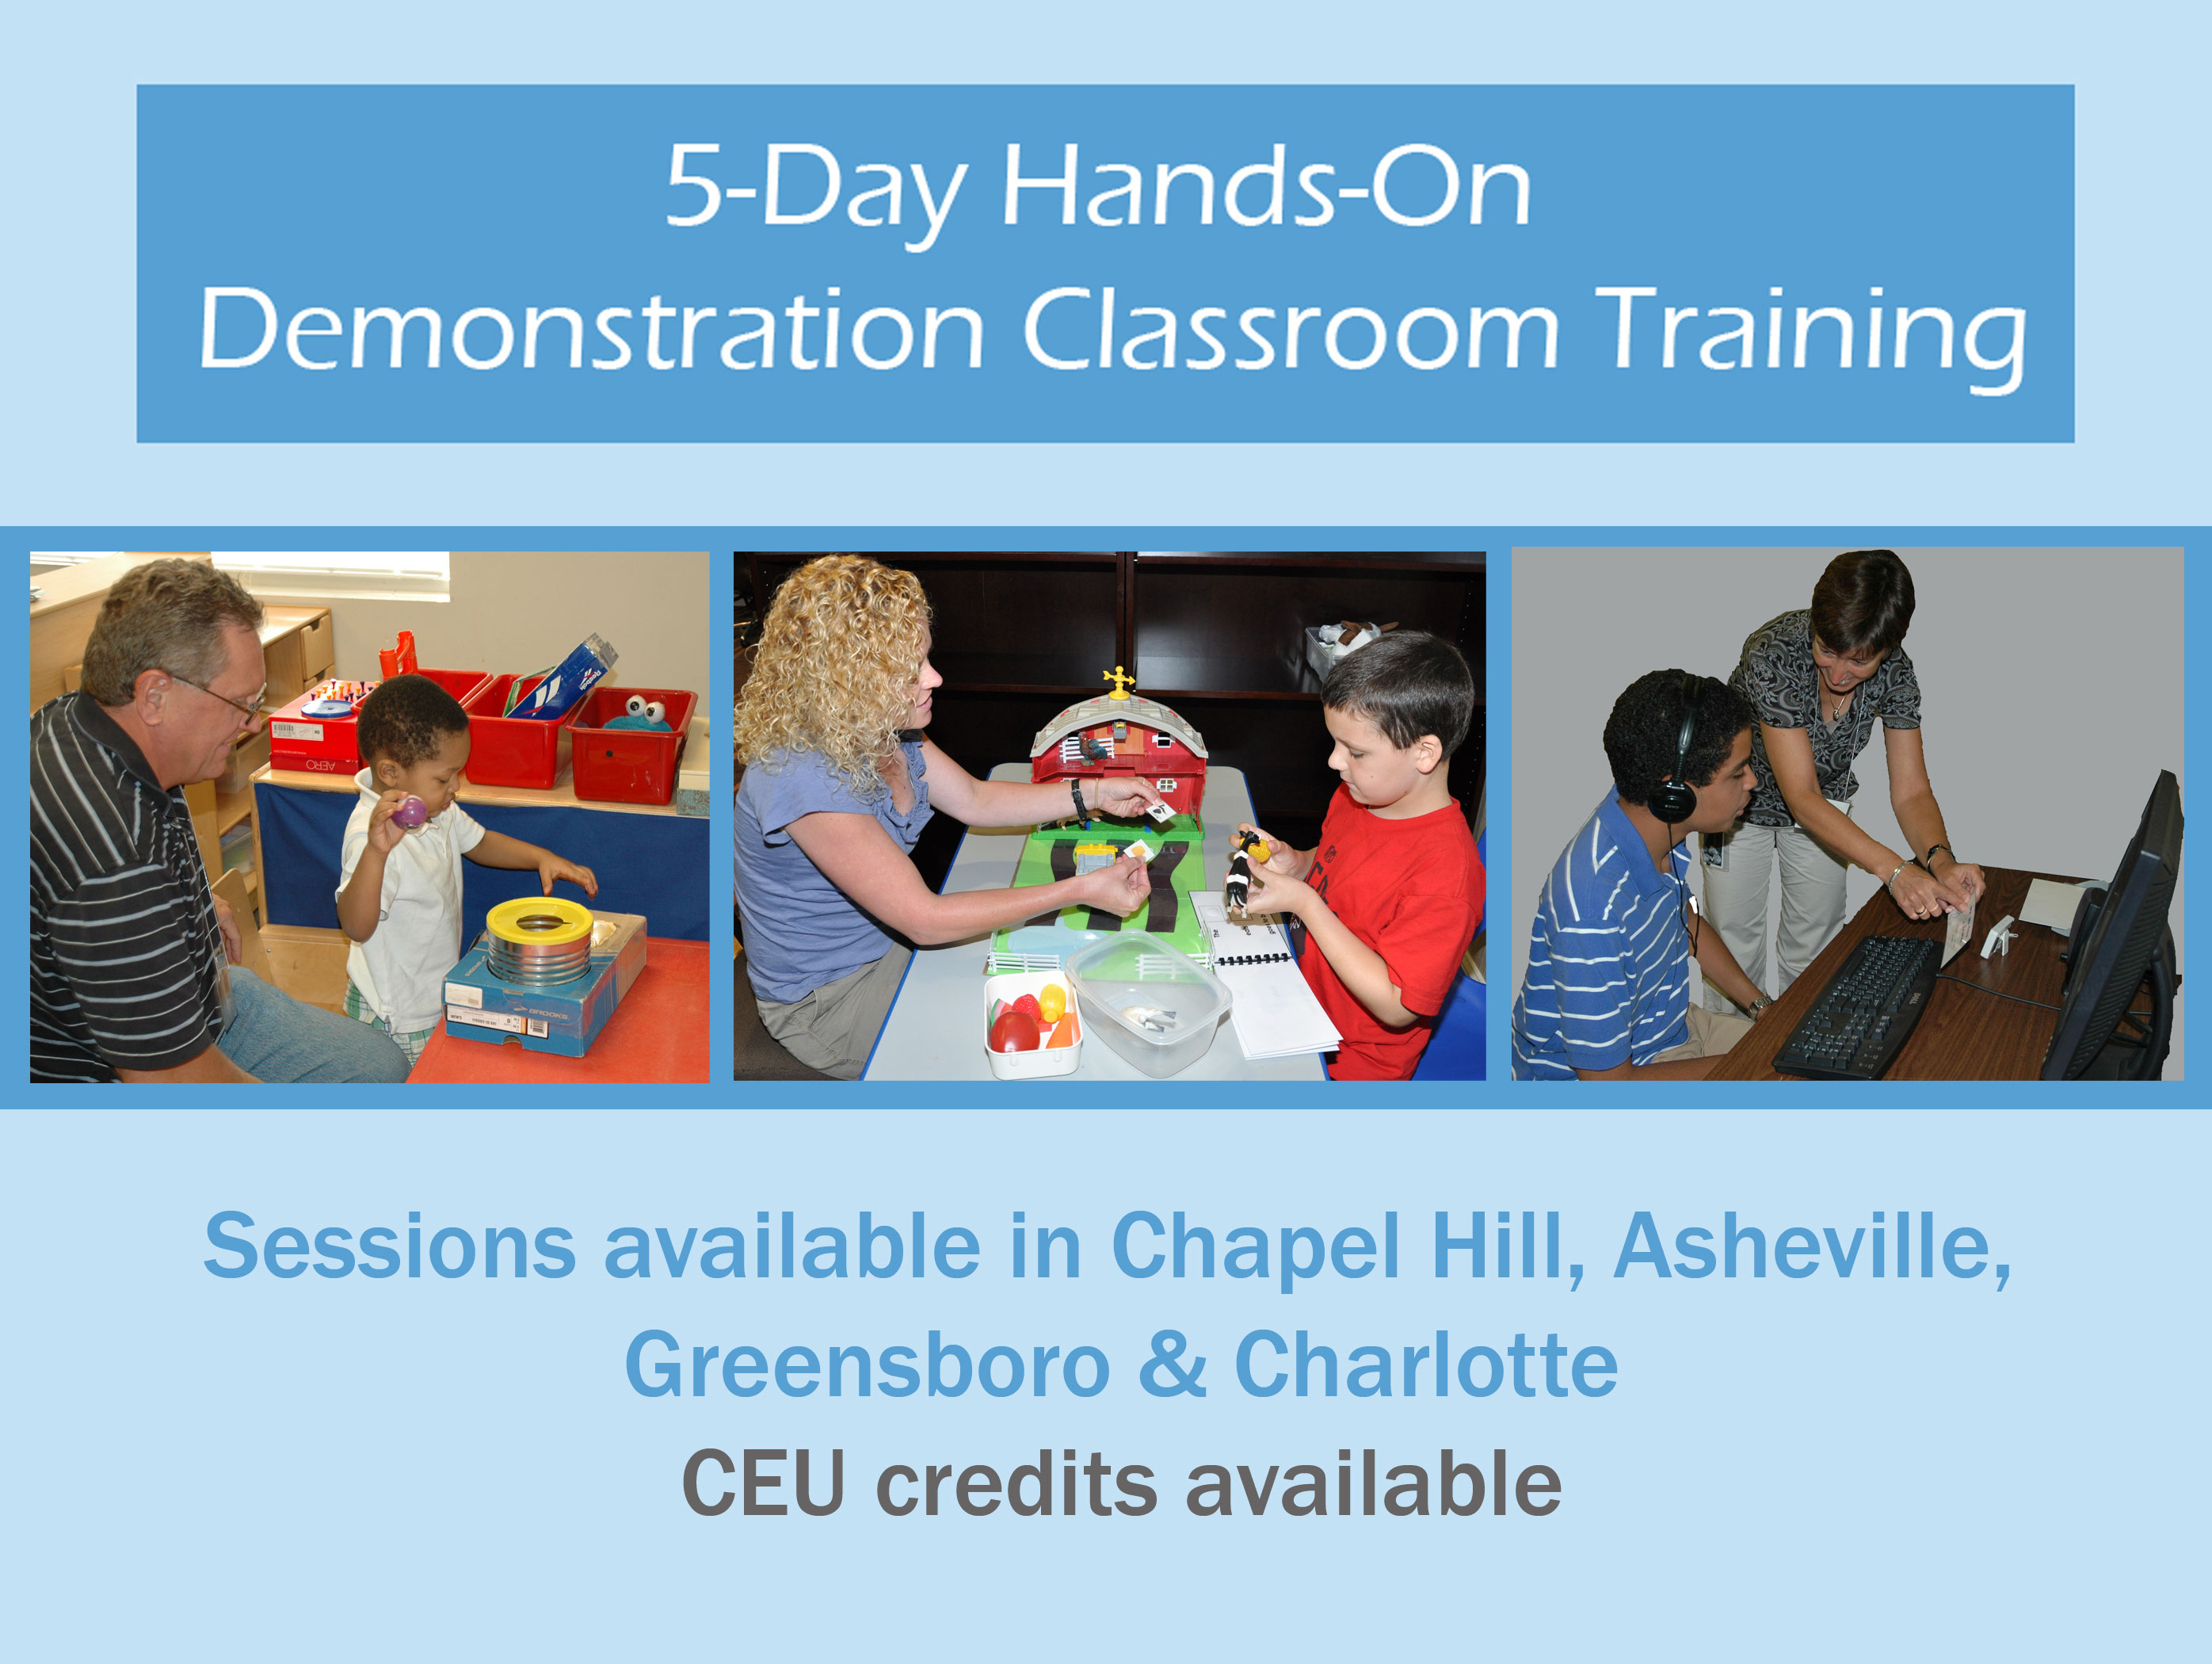 TEACCH's Five Day, Hands-on Demonstration Classroom Training